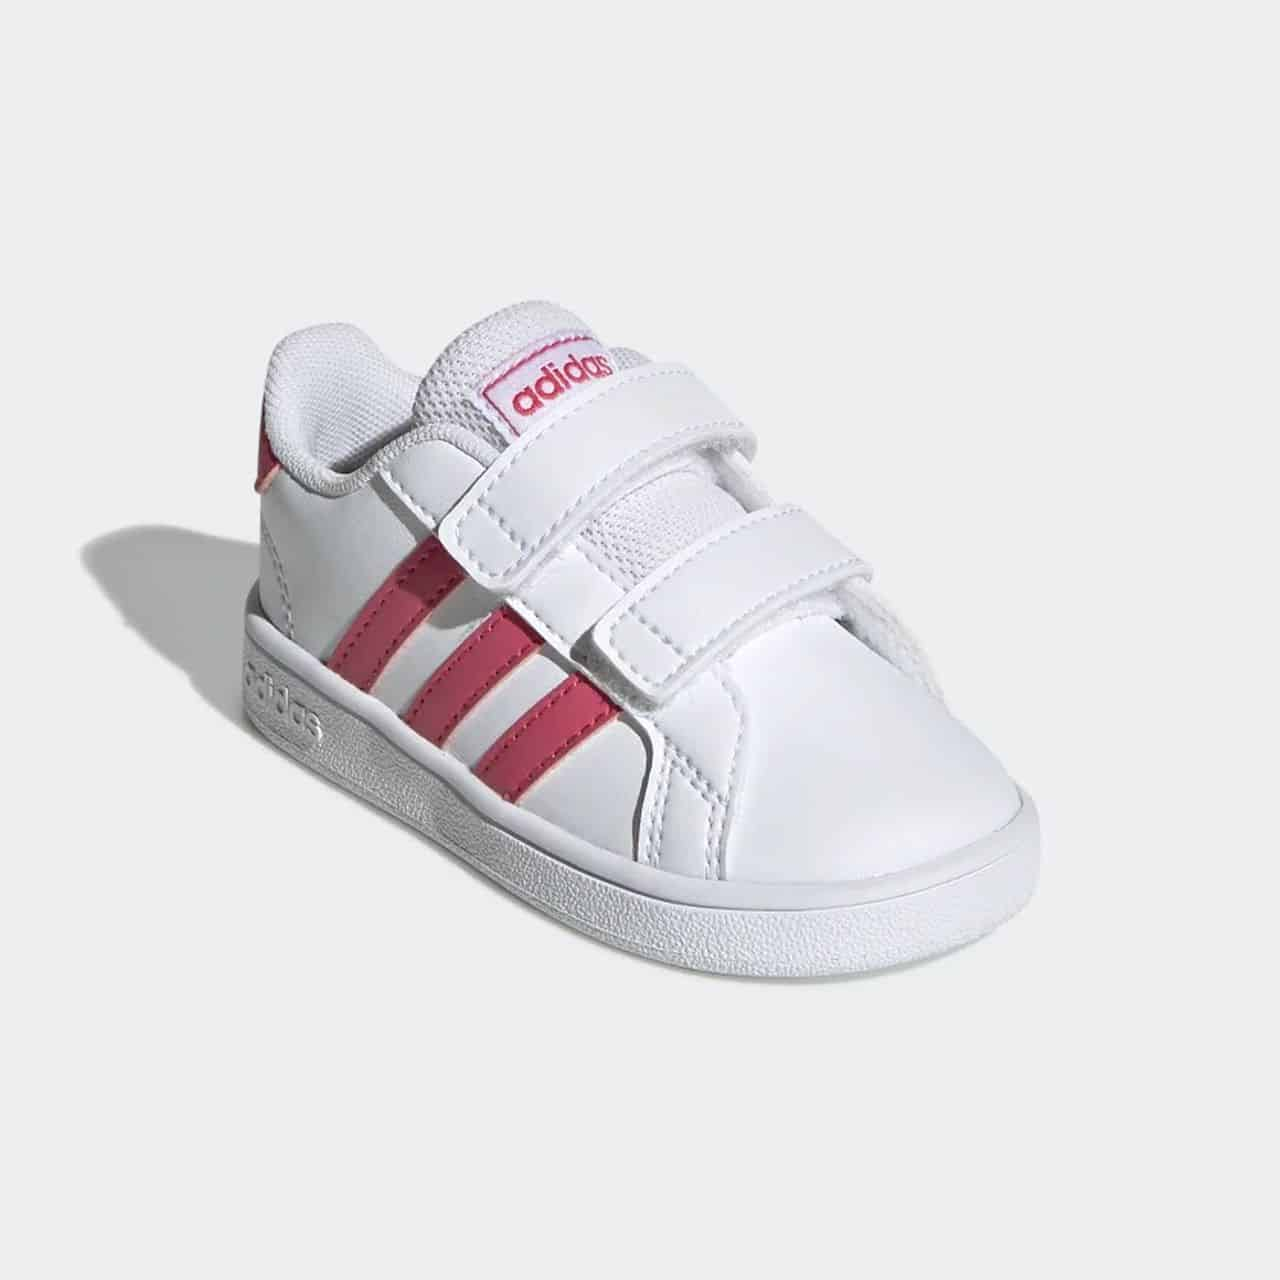 ADIDASI ORIGINALI ADIDAS GRAND COURT I - EF0115